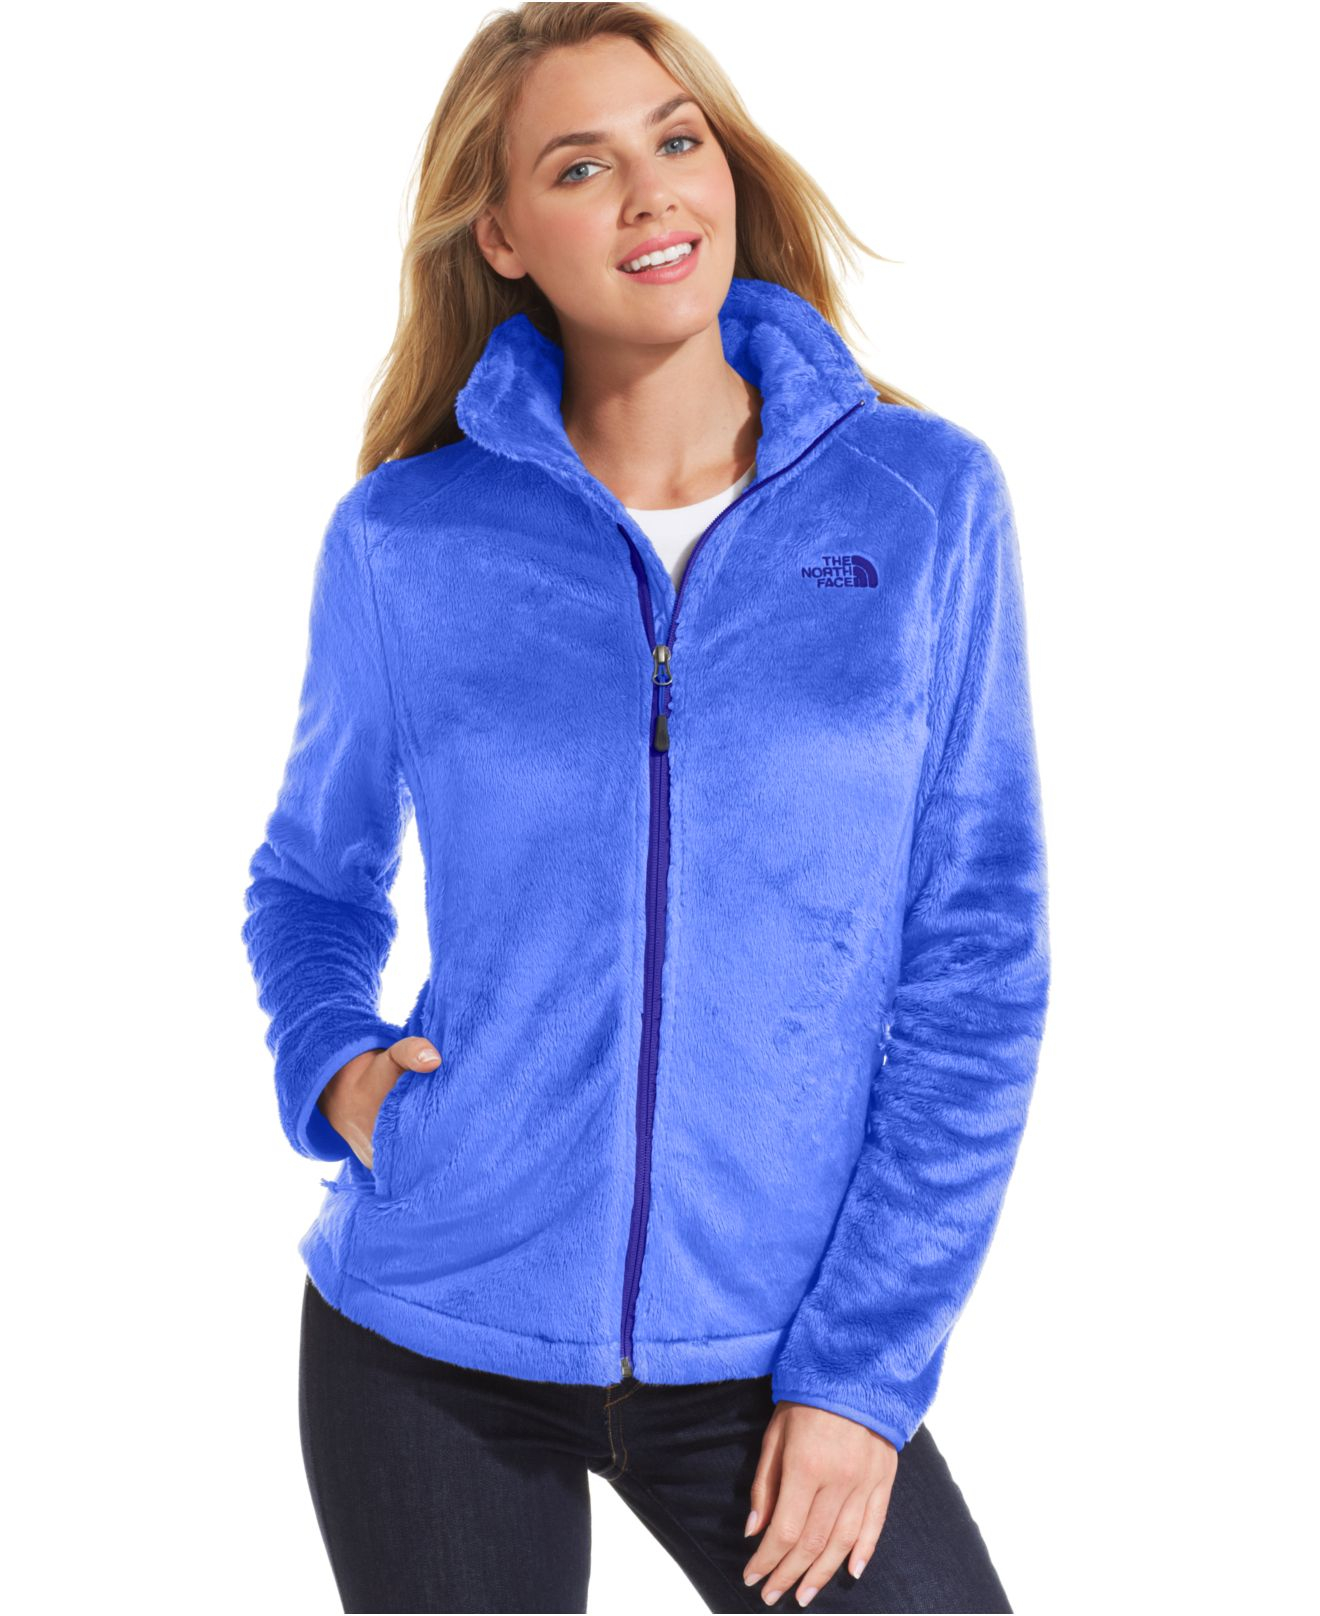 8681c0384835 Lyst - The North Face Osito 2 Fleece Jacket in Blue